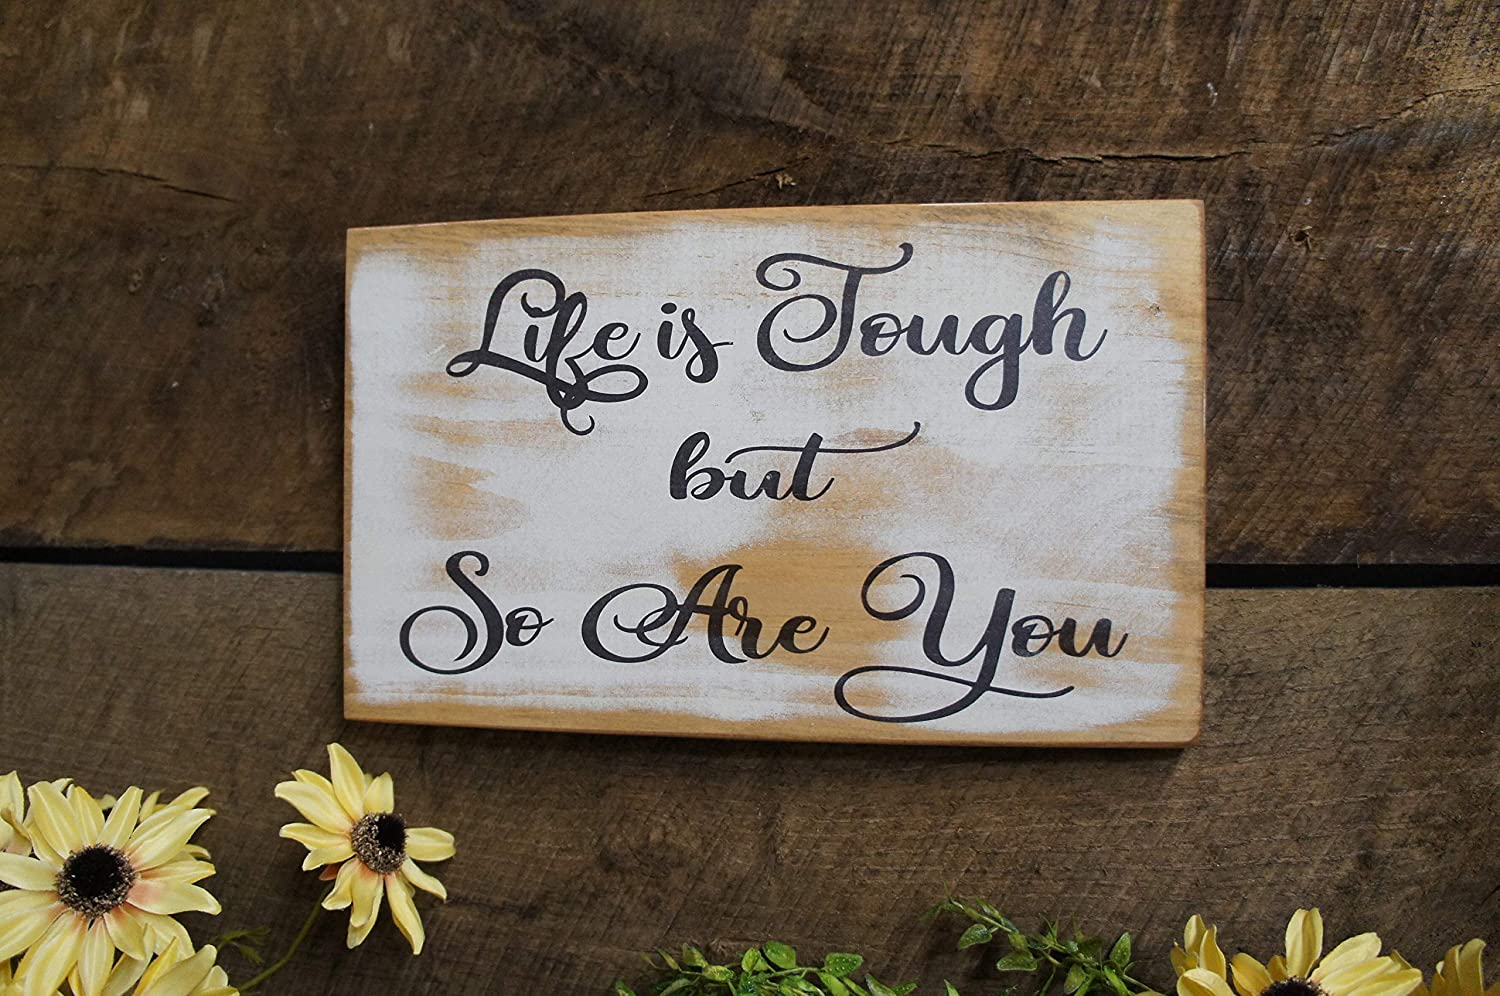 Rustic Fun Motivational Life is Tough But So are You Rustic Classy Look Whitewash Worn Background Black Lettering Funny Wood Sign for Home Living Room Decor